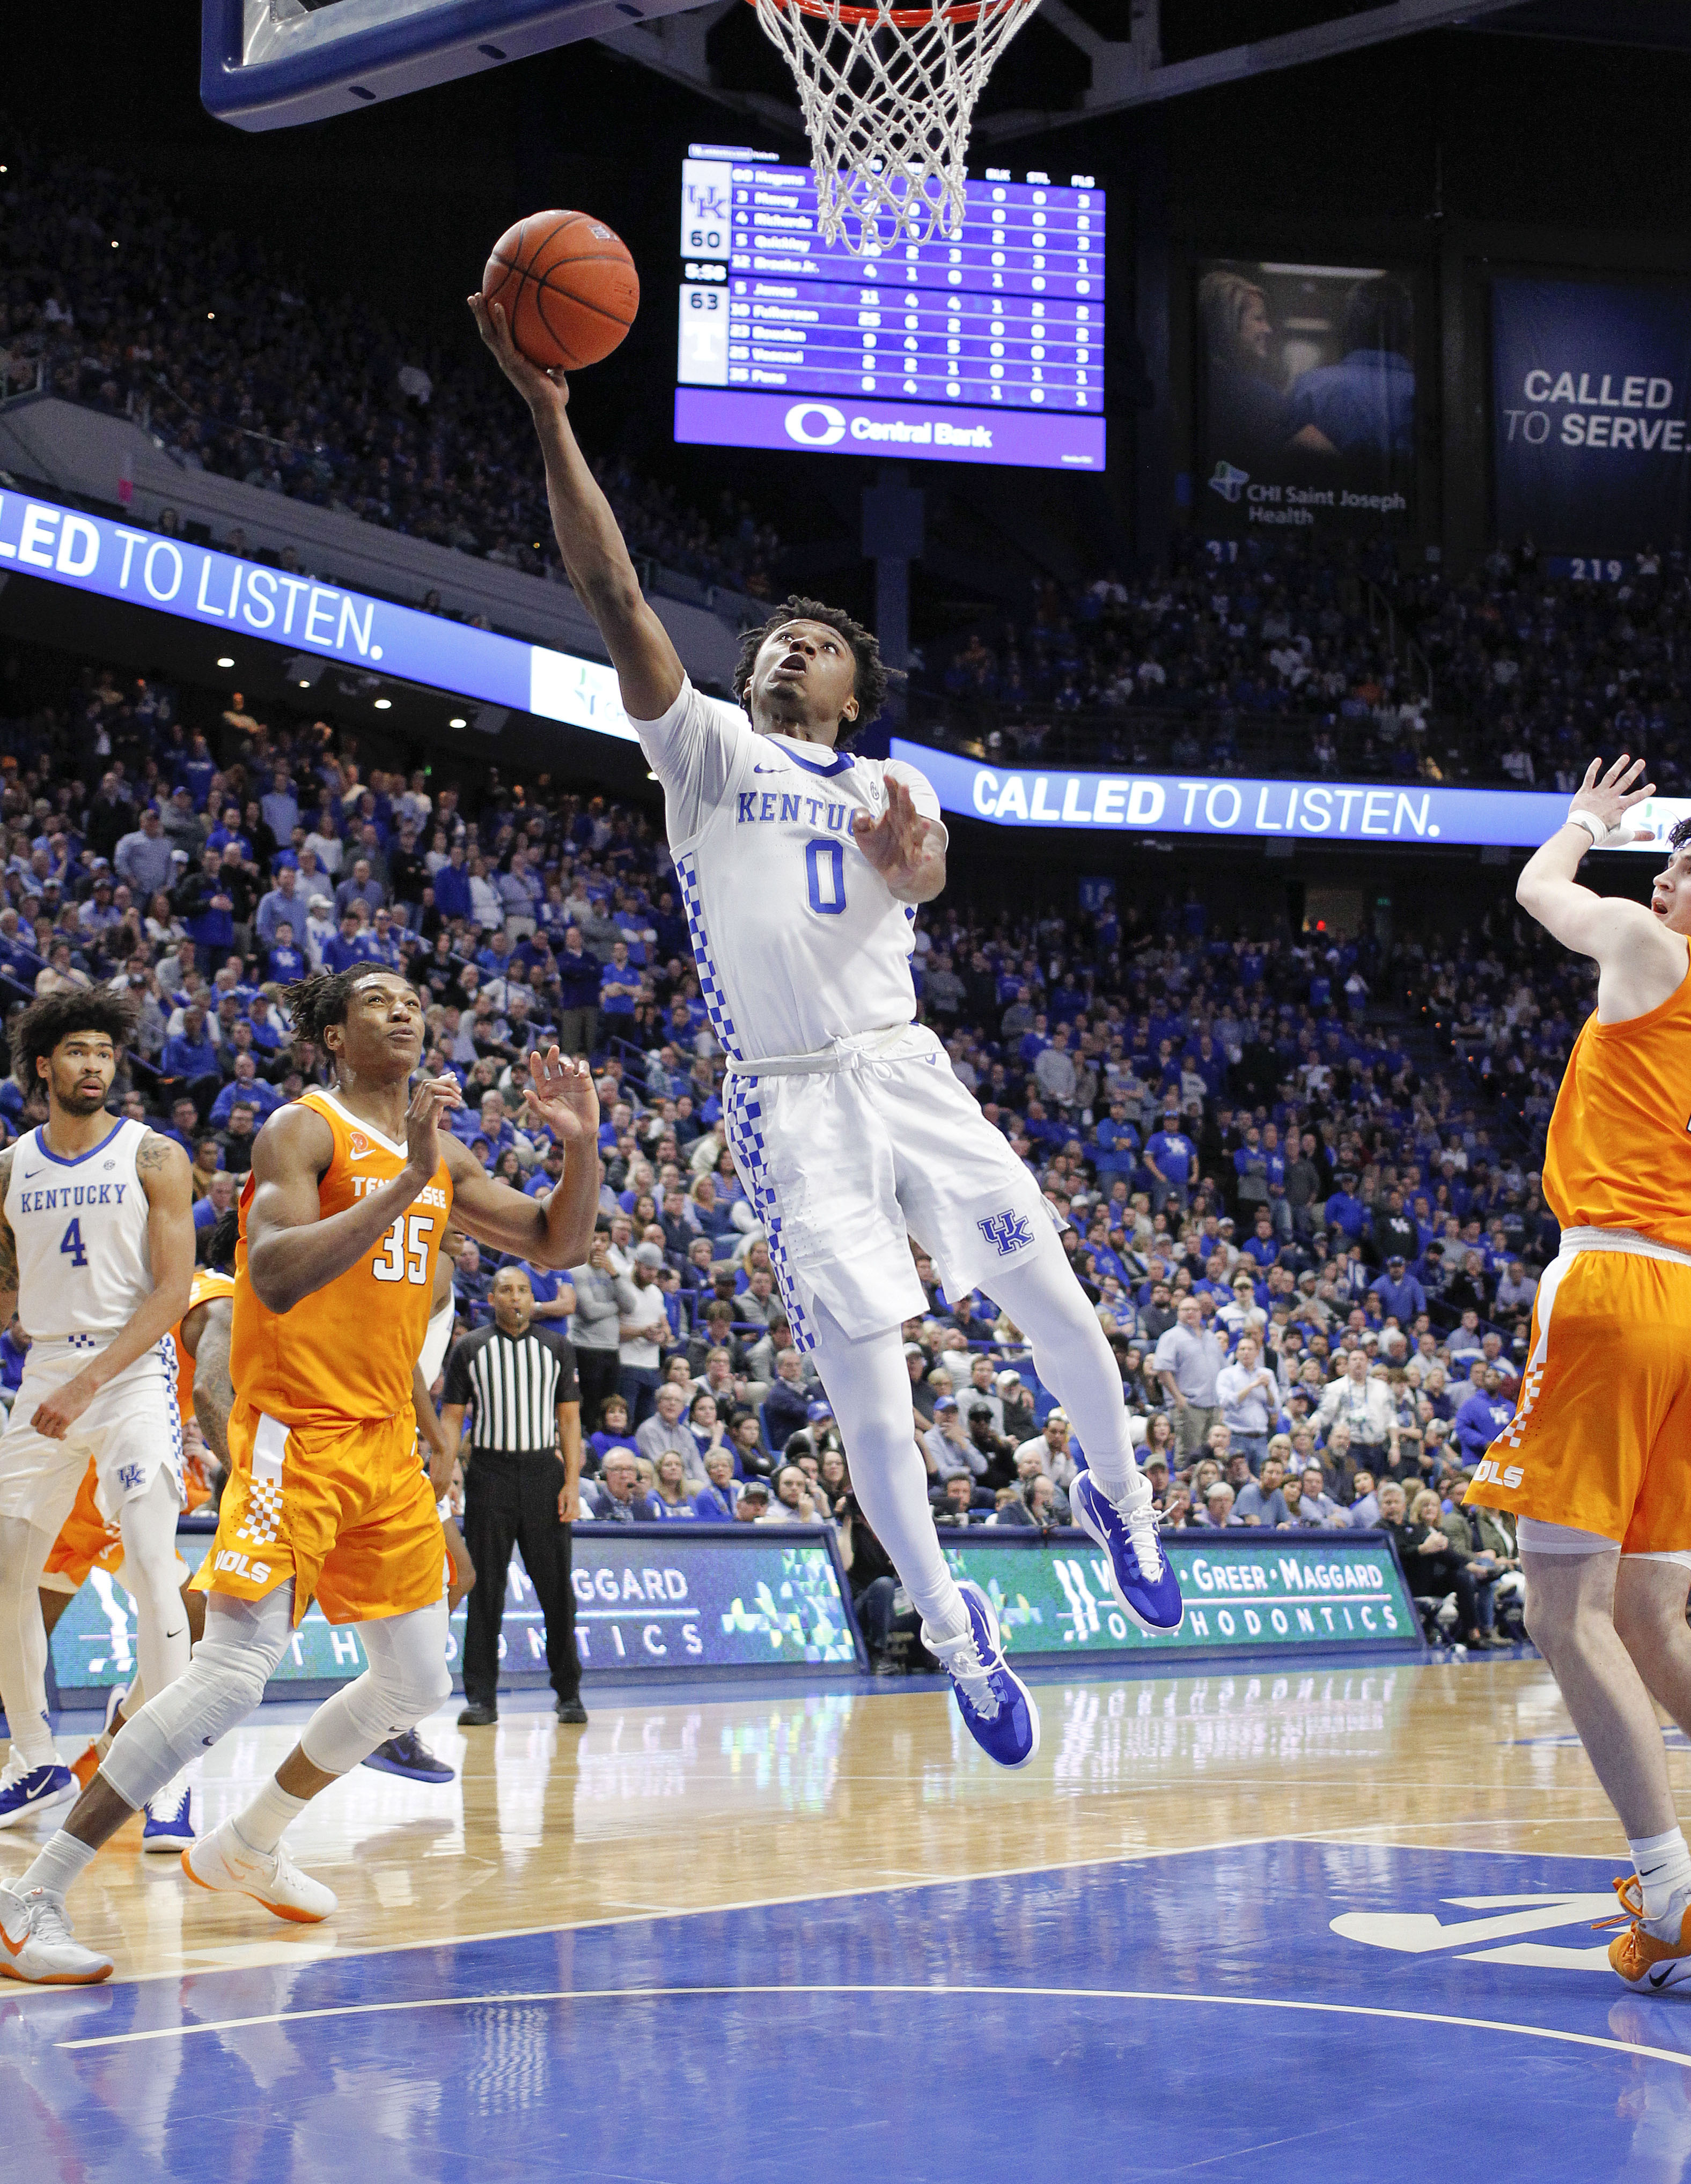 Kentucky Wildcats guard Ashton Hagans shoots the ball against the Tennessee Volunteers in the second half at Rupp Arena.